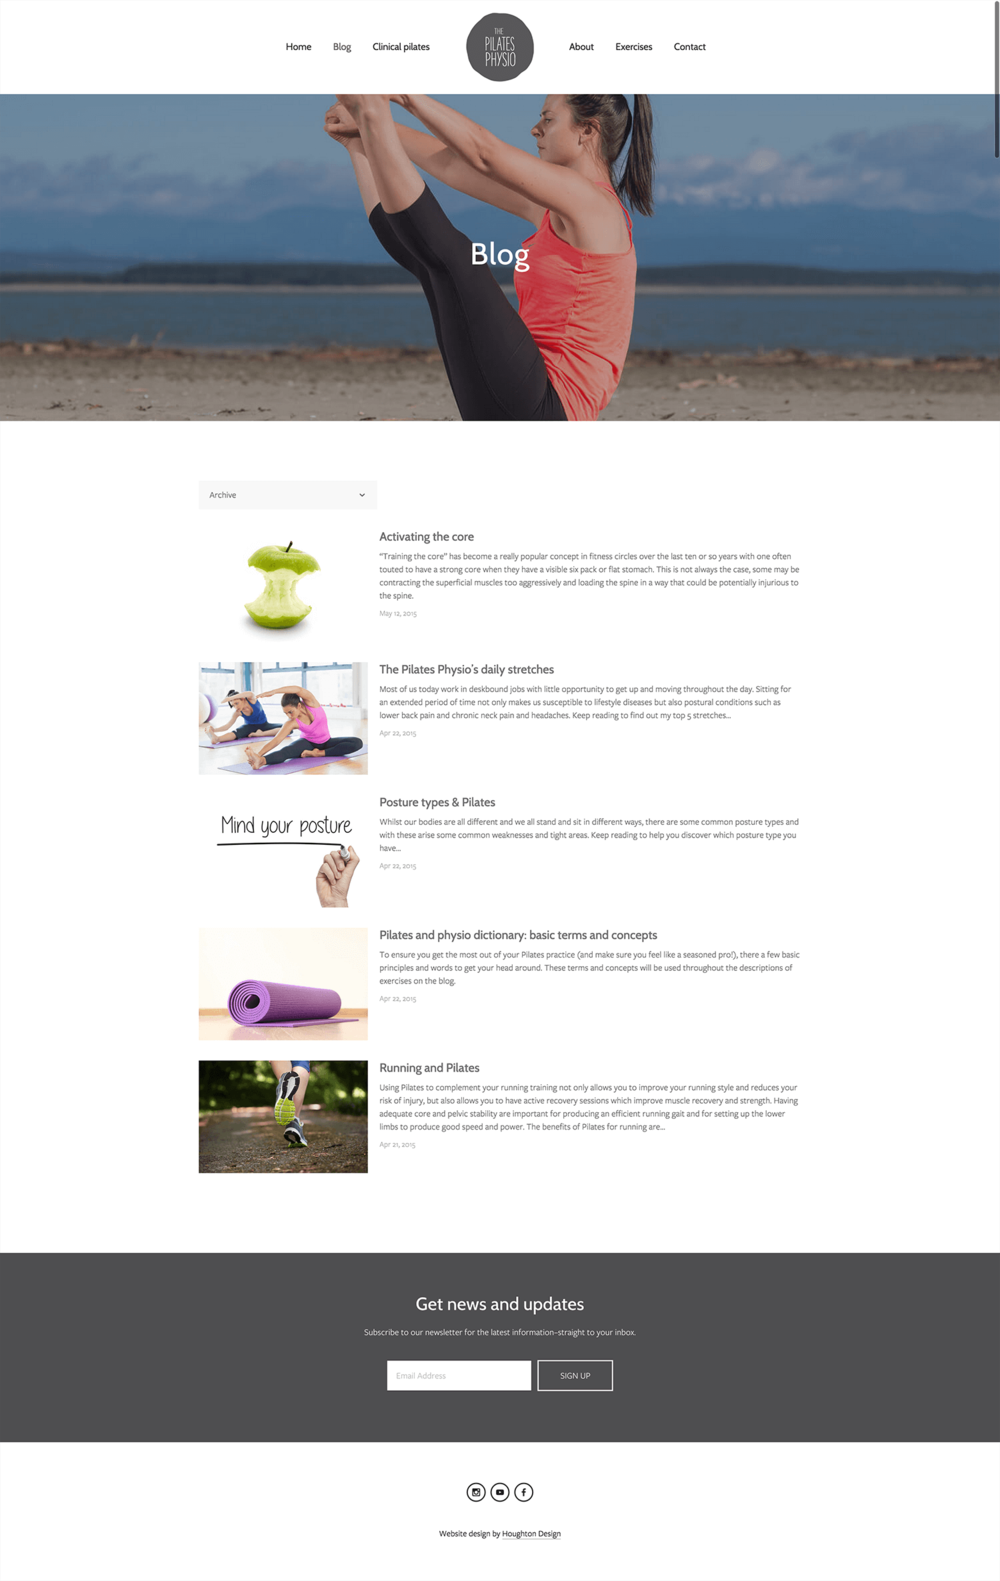 Blog page of Squarespace website for The Pilates Physio - www.thepilatesphysio.com